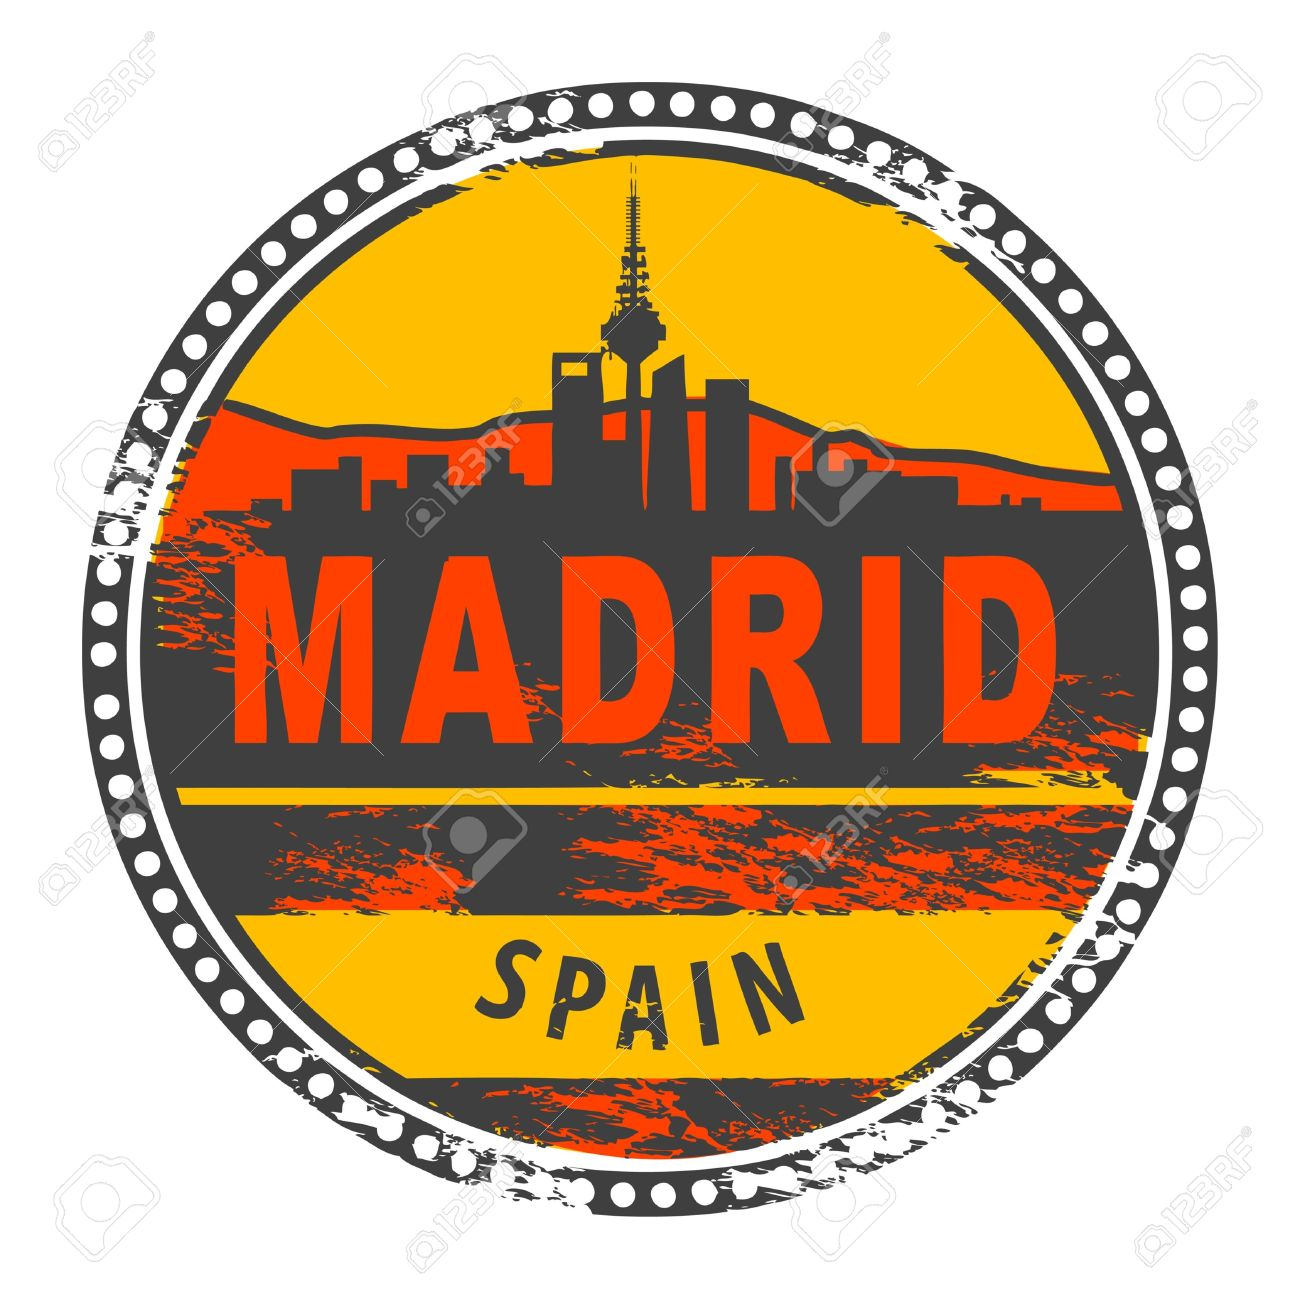 Madrid clipart #19, Download drawings